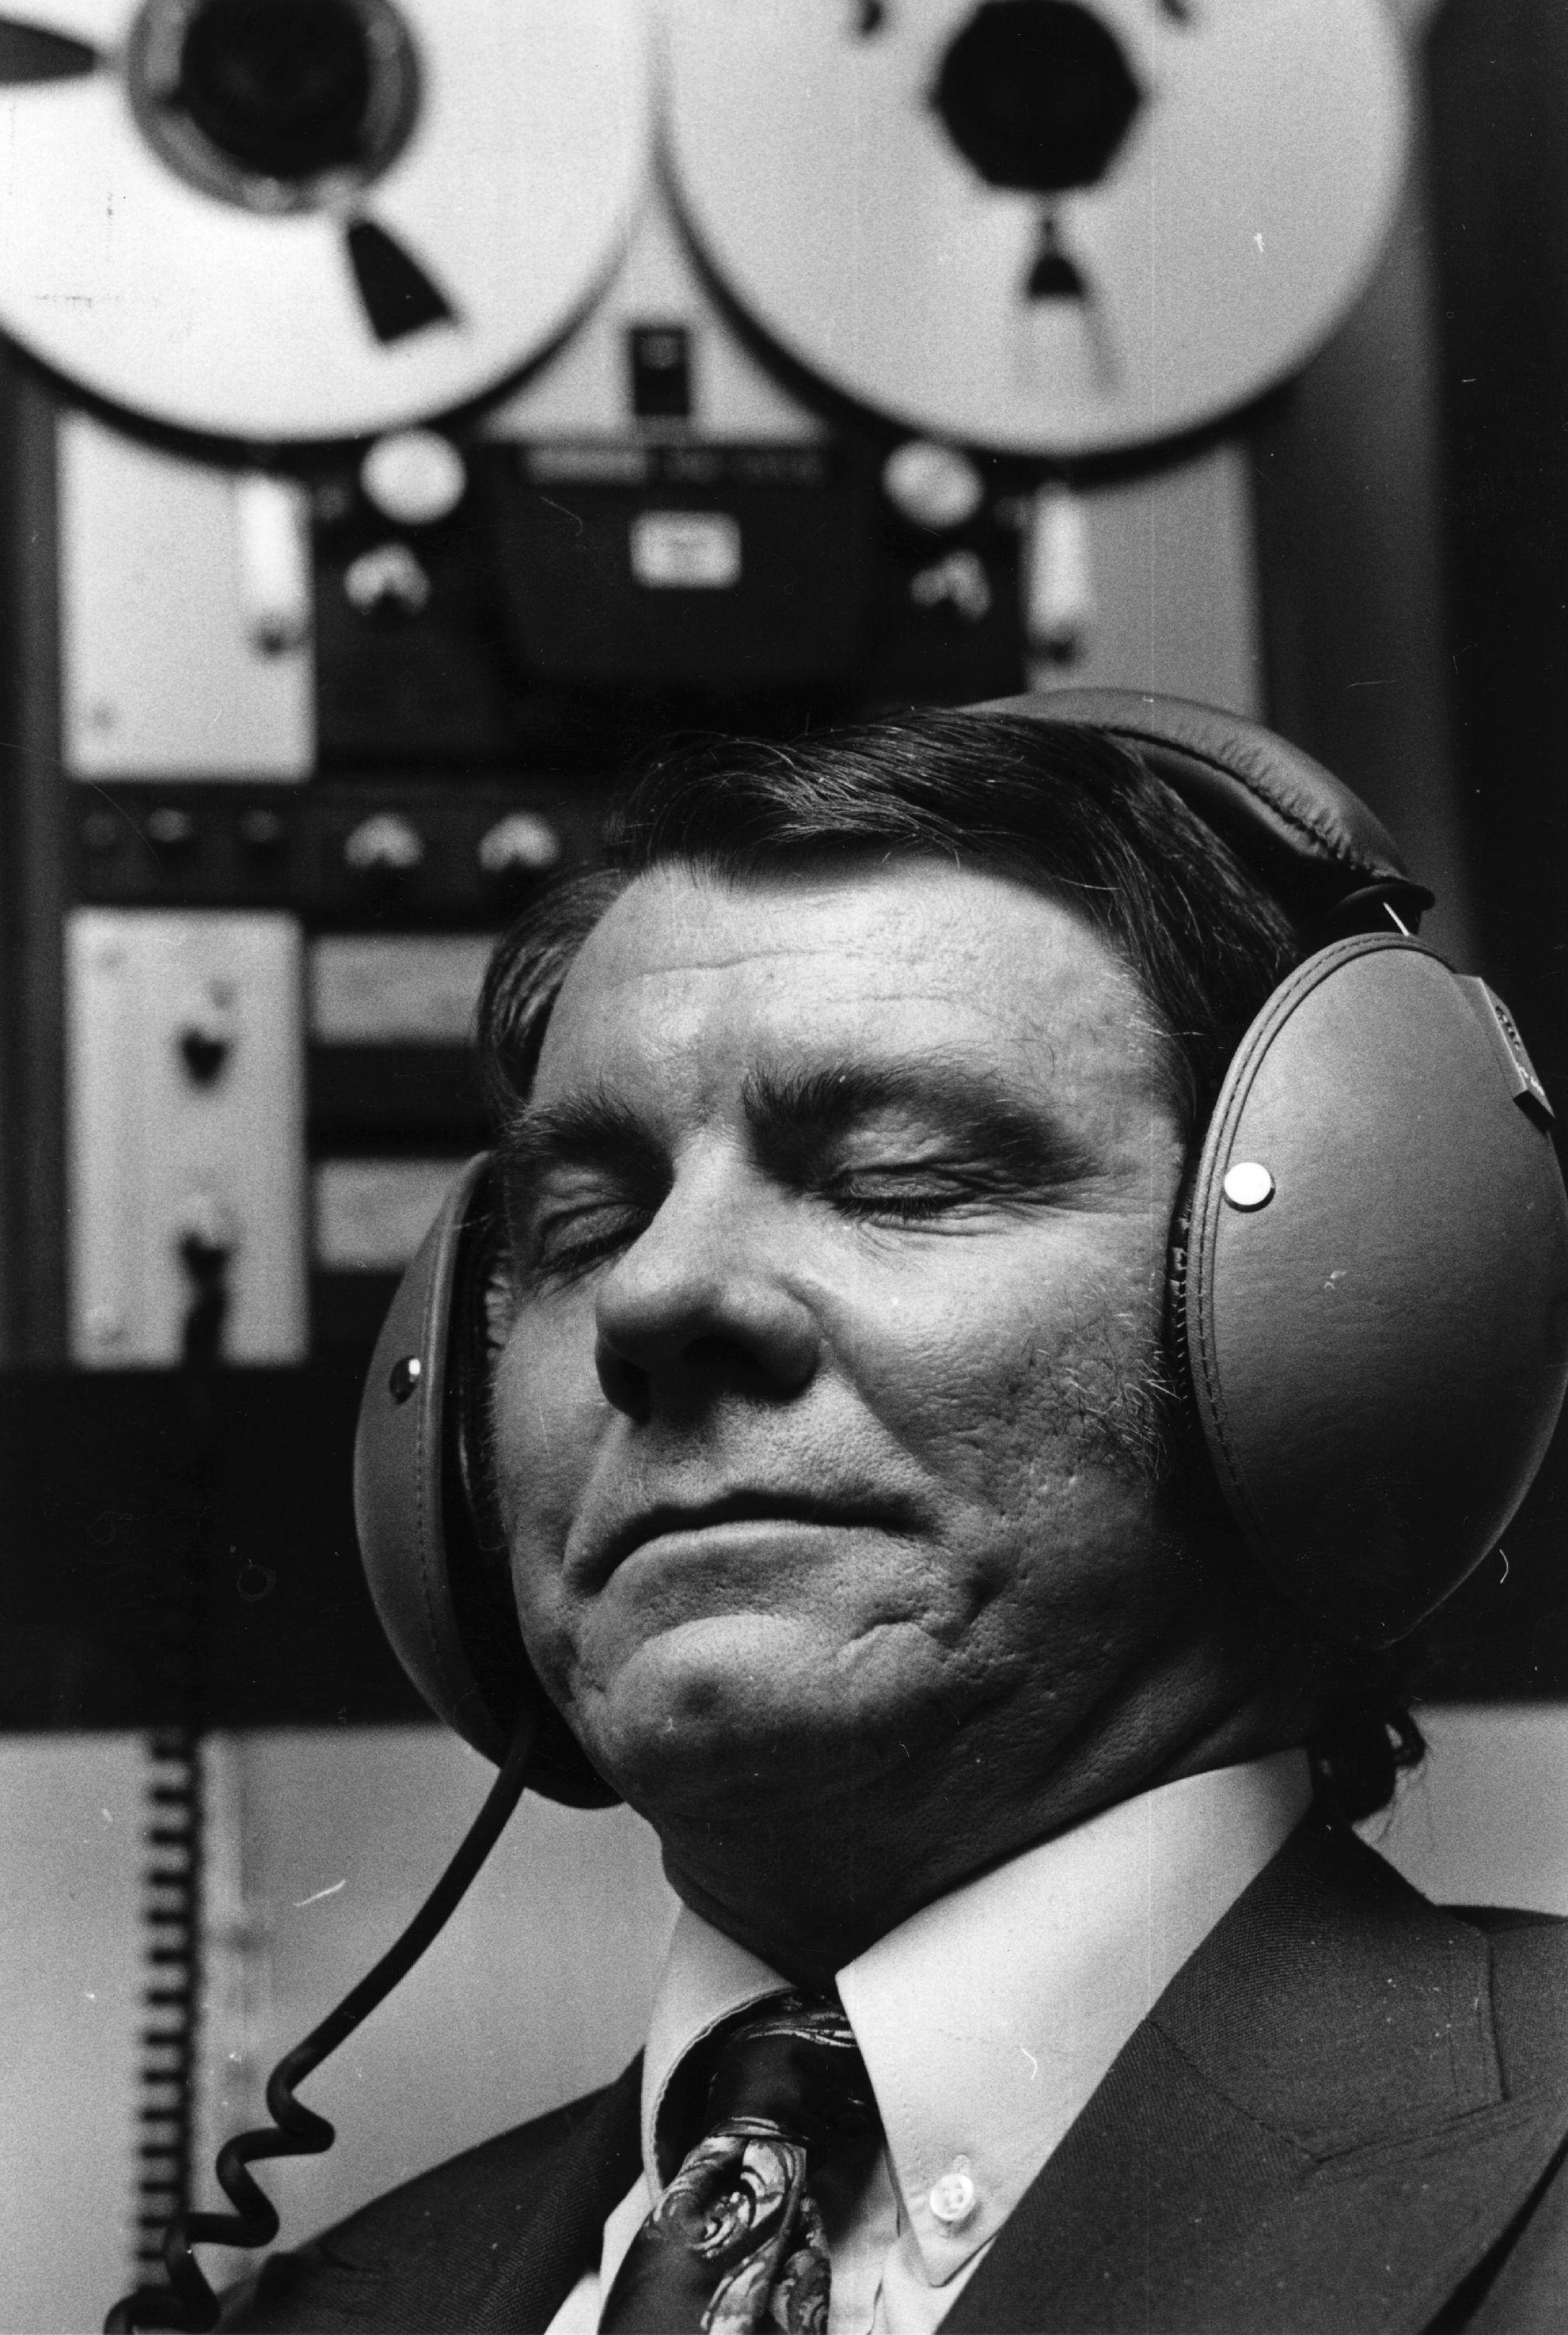 18th April 1974: A man listens with headphones during a tape hi-fi (high fidelity) demonstration.